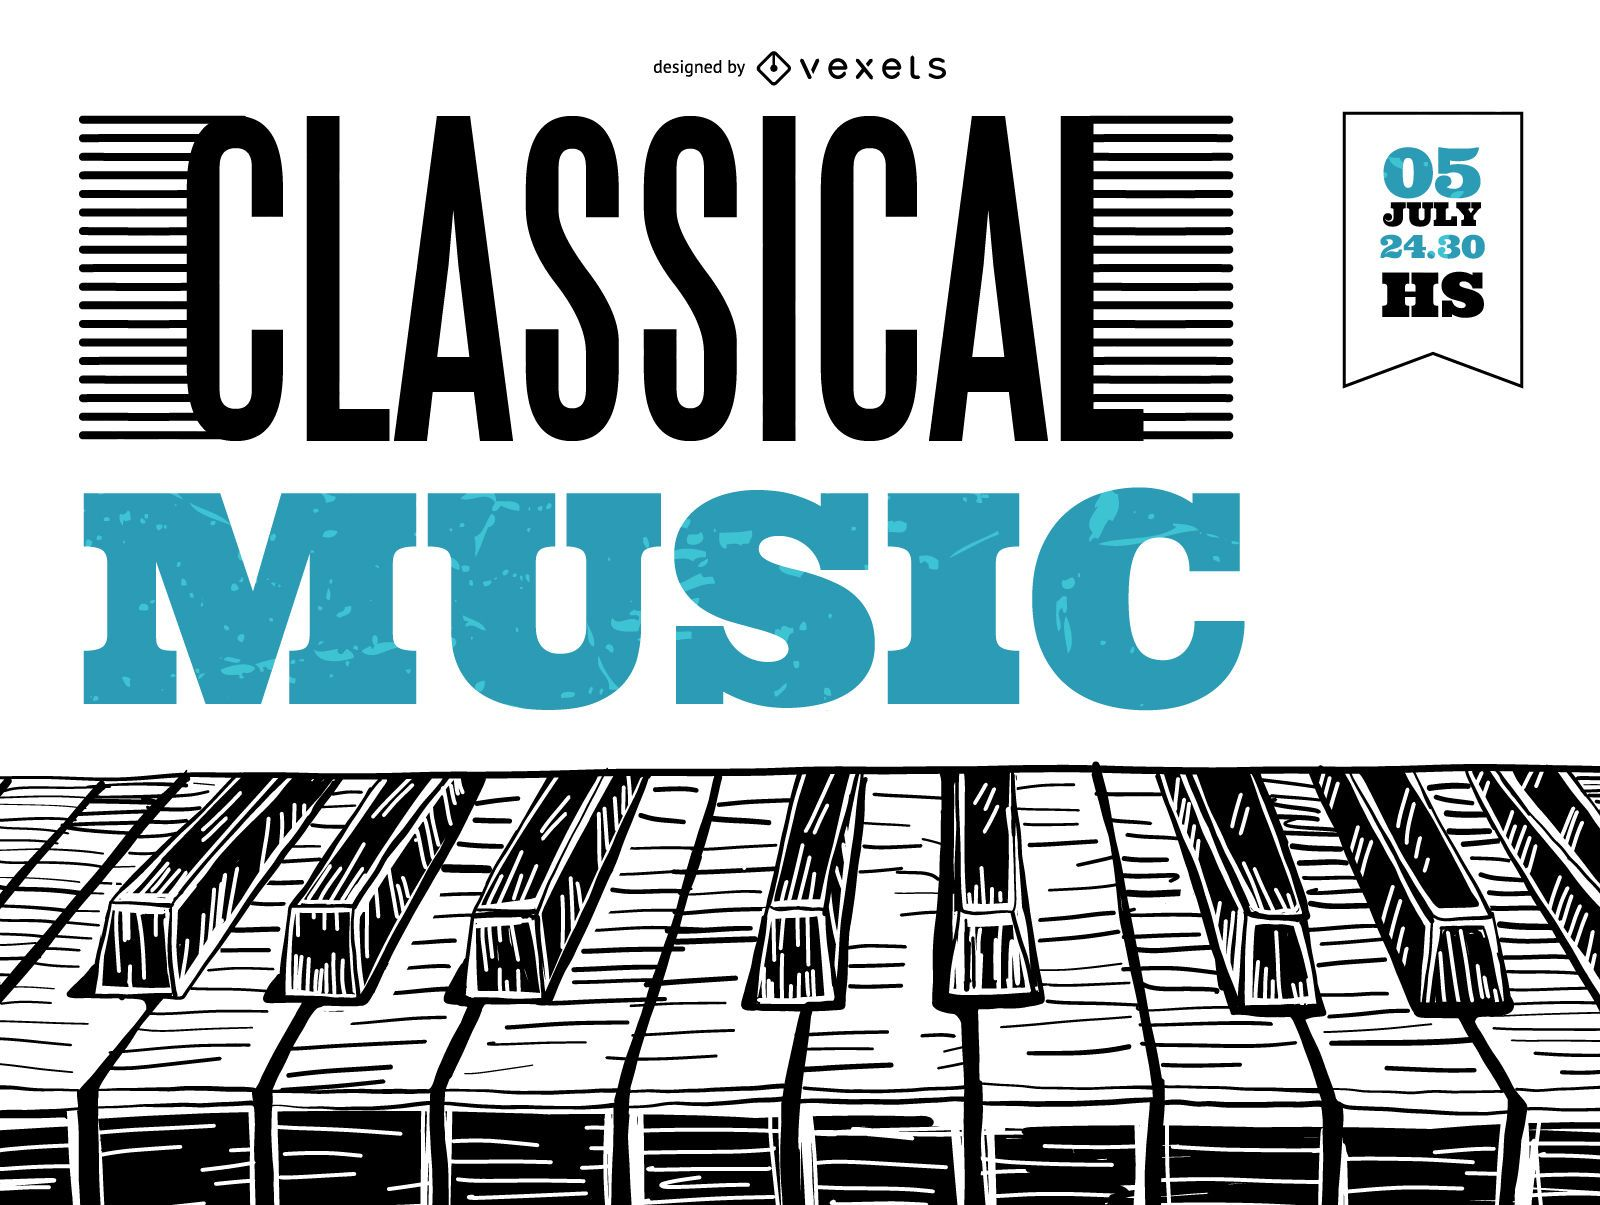 Piano classical music poster